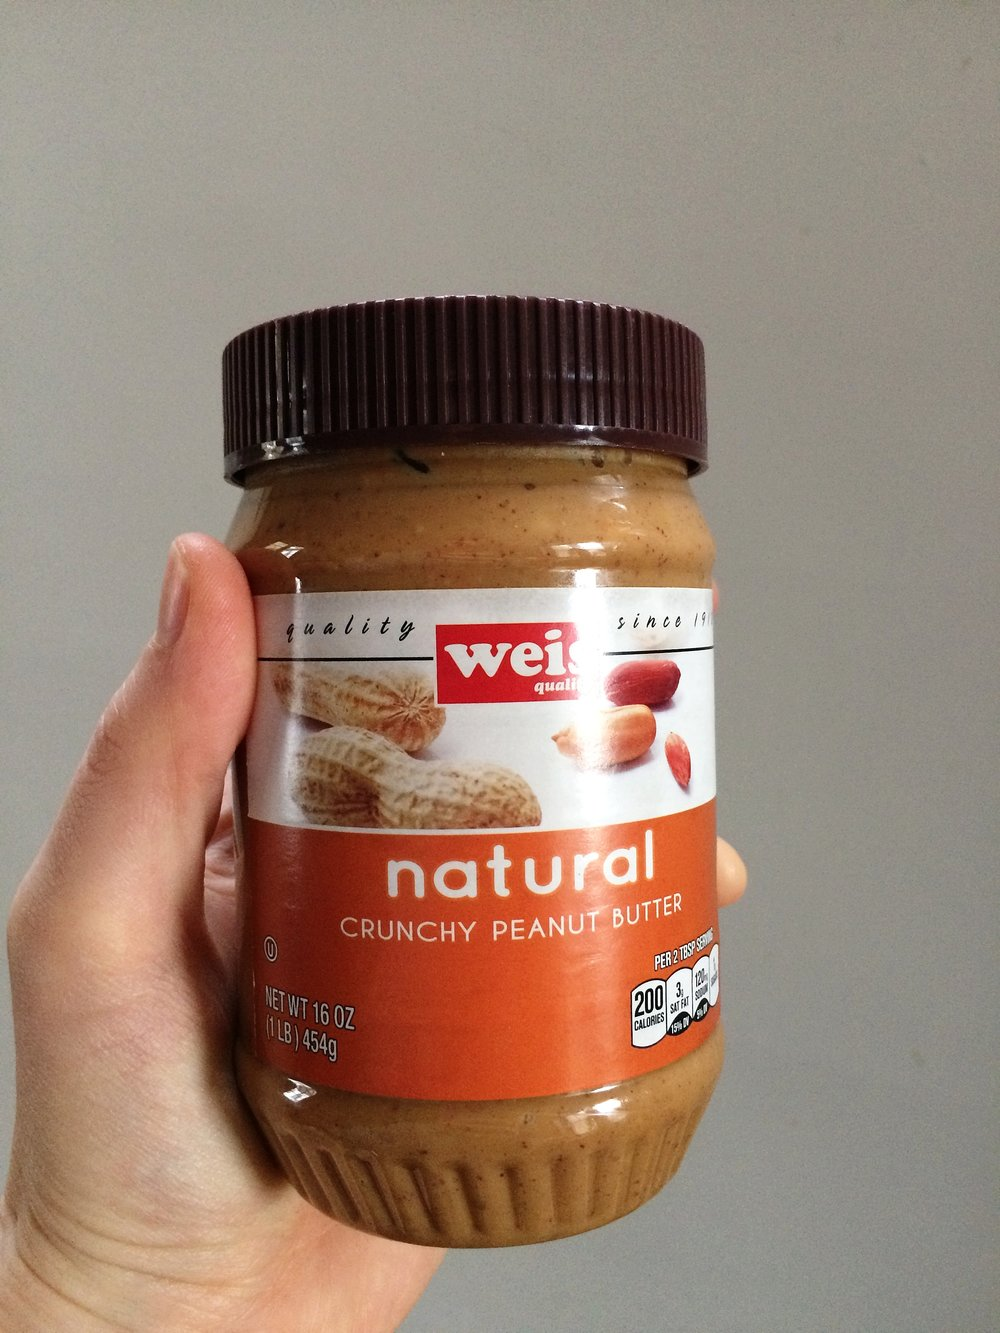 Our last photo together before the breakup (pro tip: Weis Peanut Butter is a bargain, and has NO addatives, just peanuts and salt!)